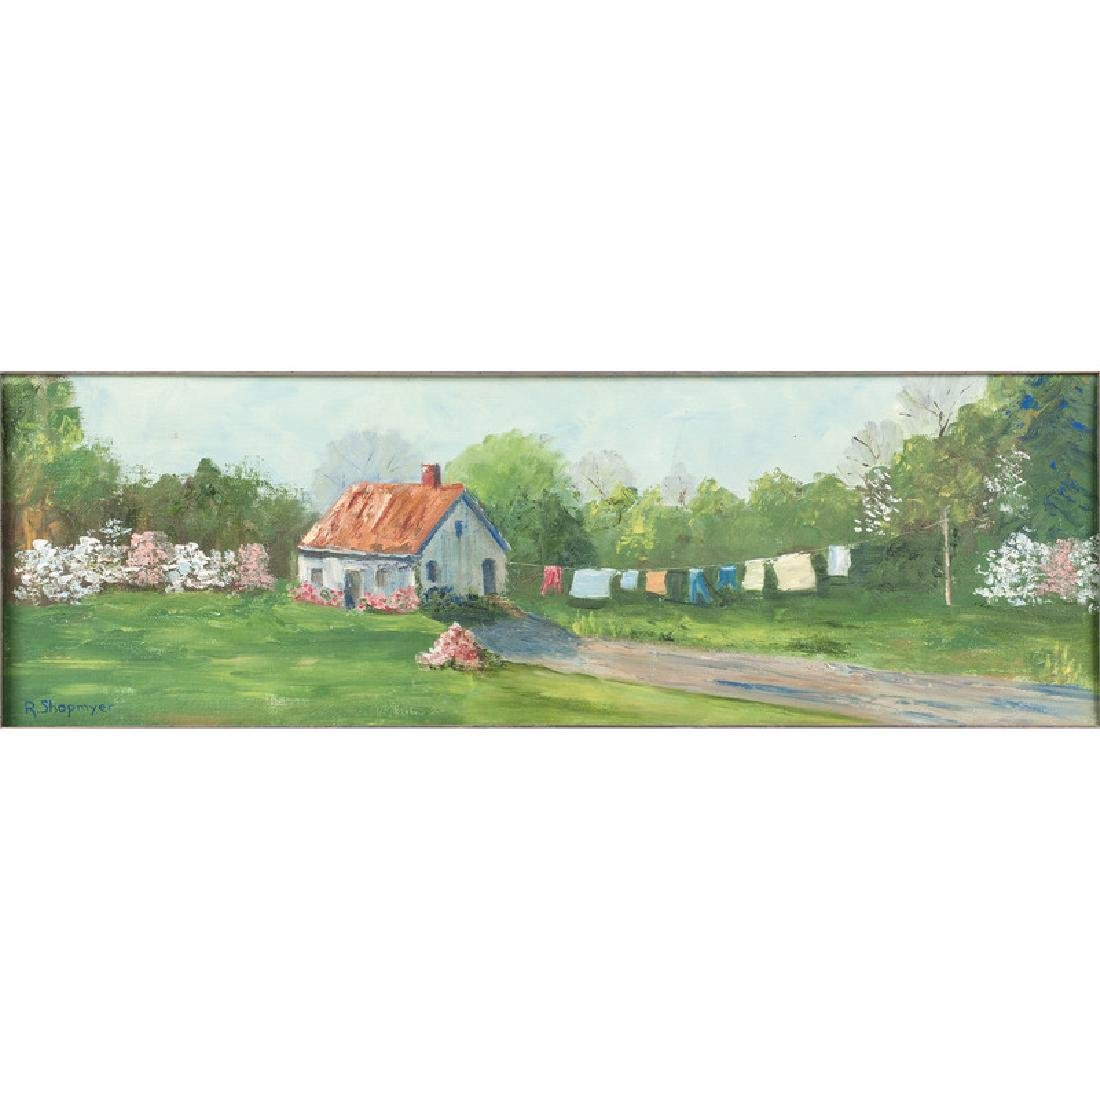 Rustic Painting of a Cabin, Signed R. Shopmyer